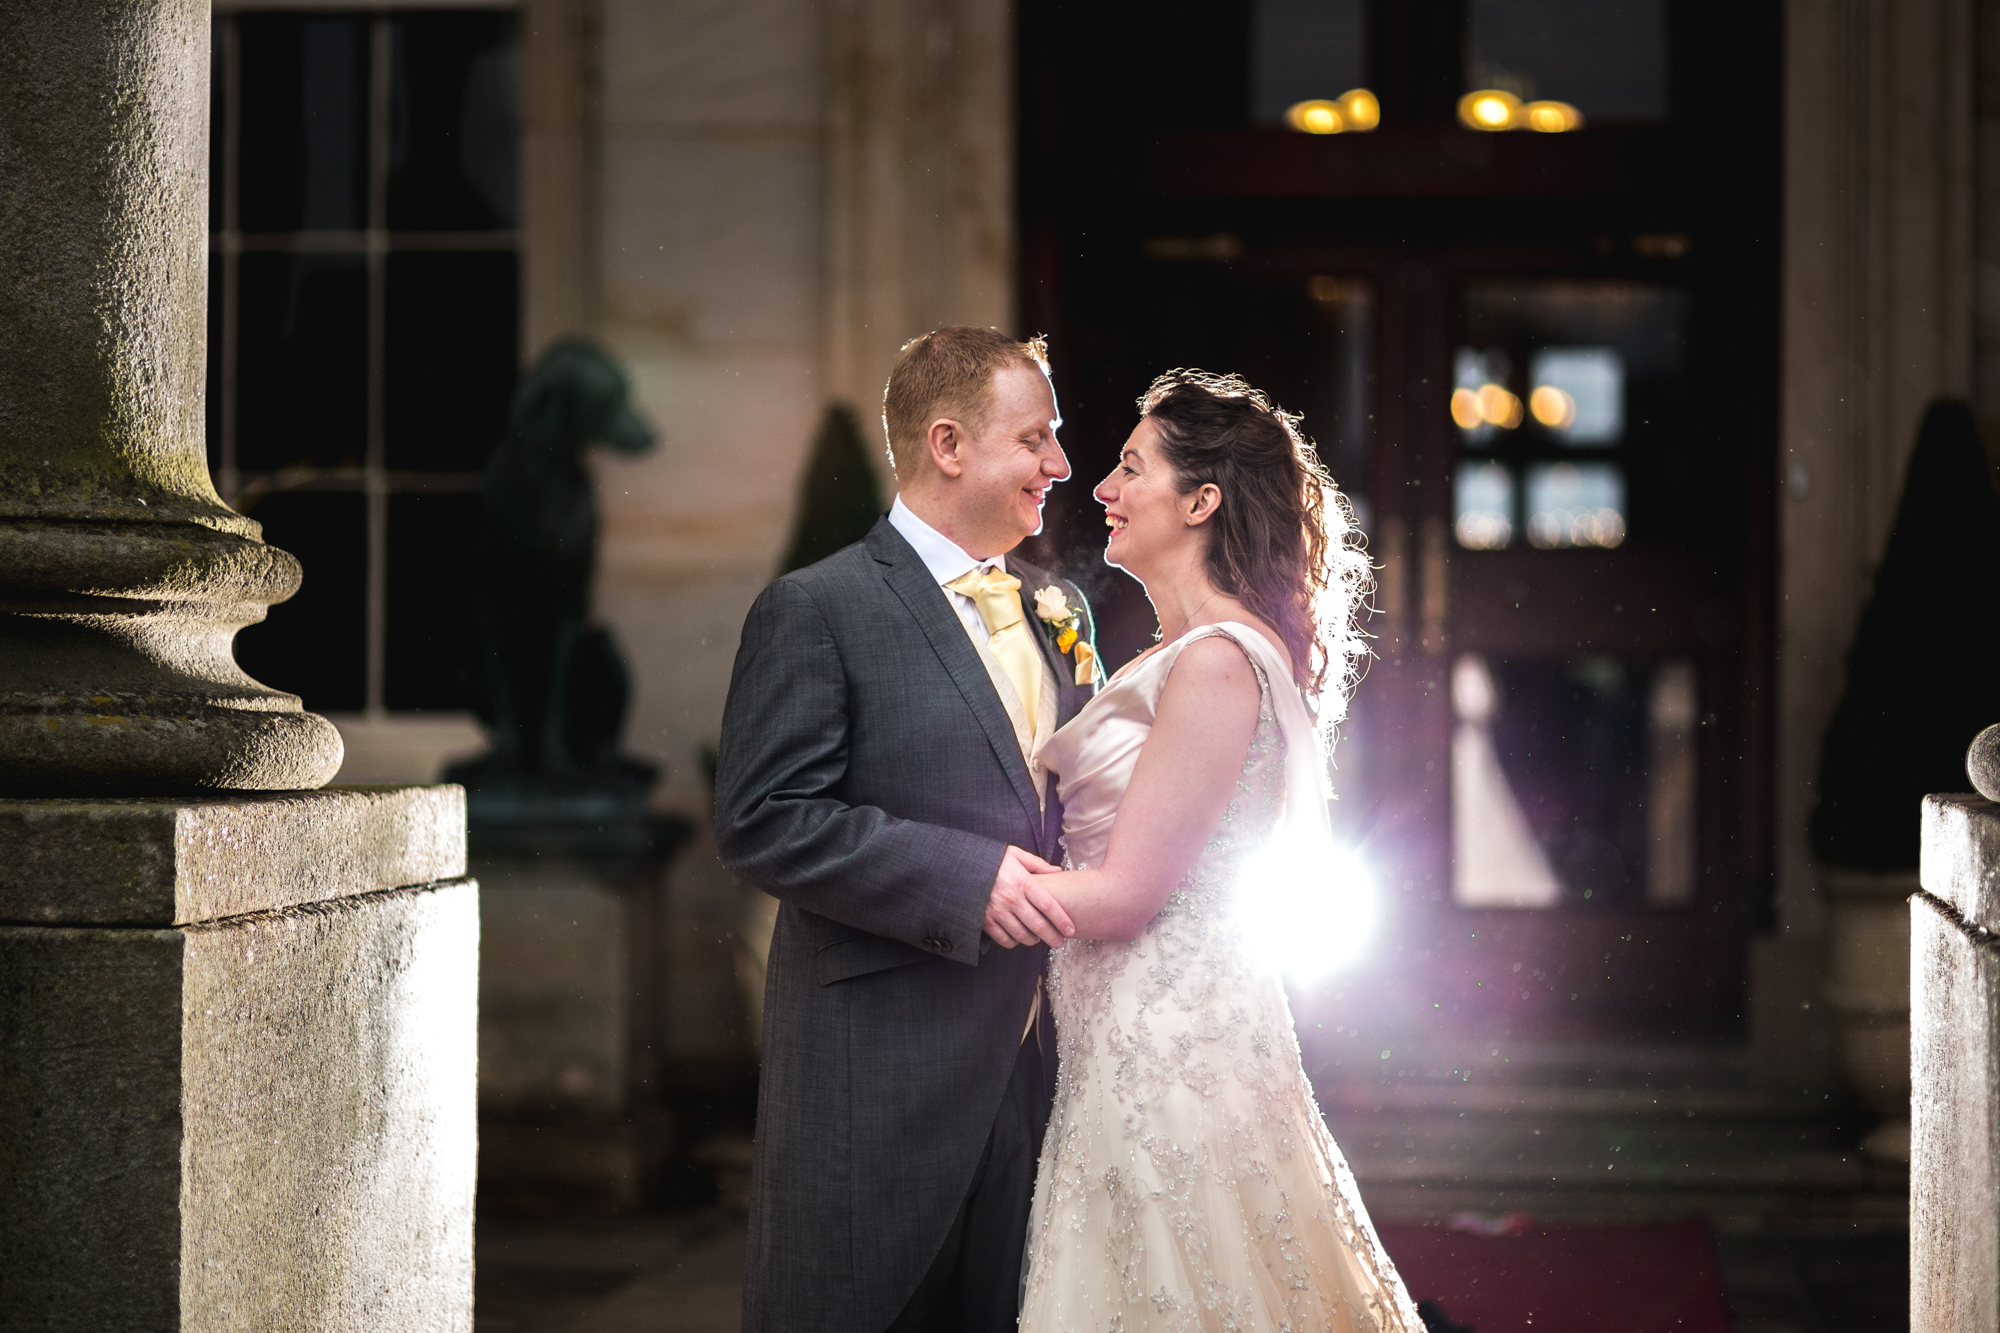 wynyard hall wedding photographer duncan mccall-1044.jpg